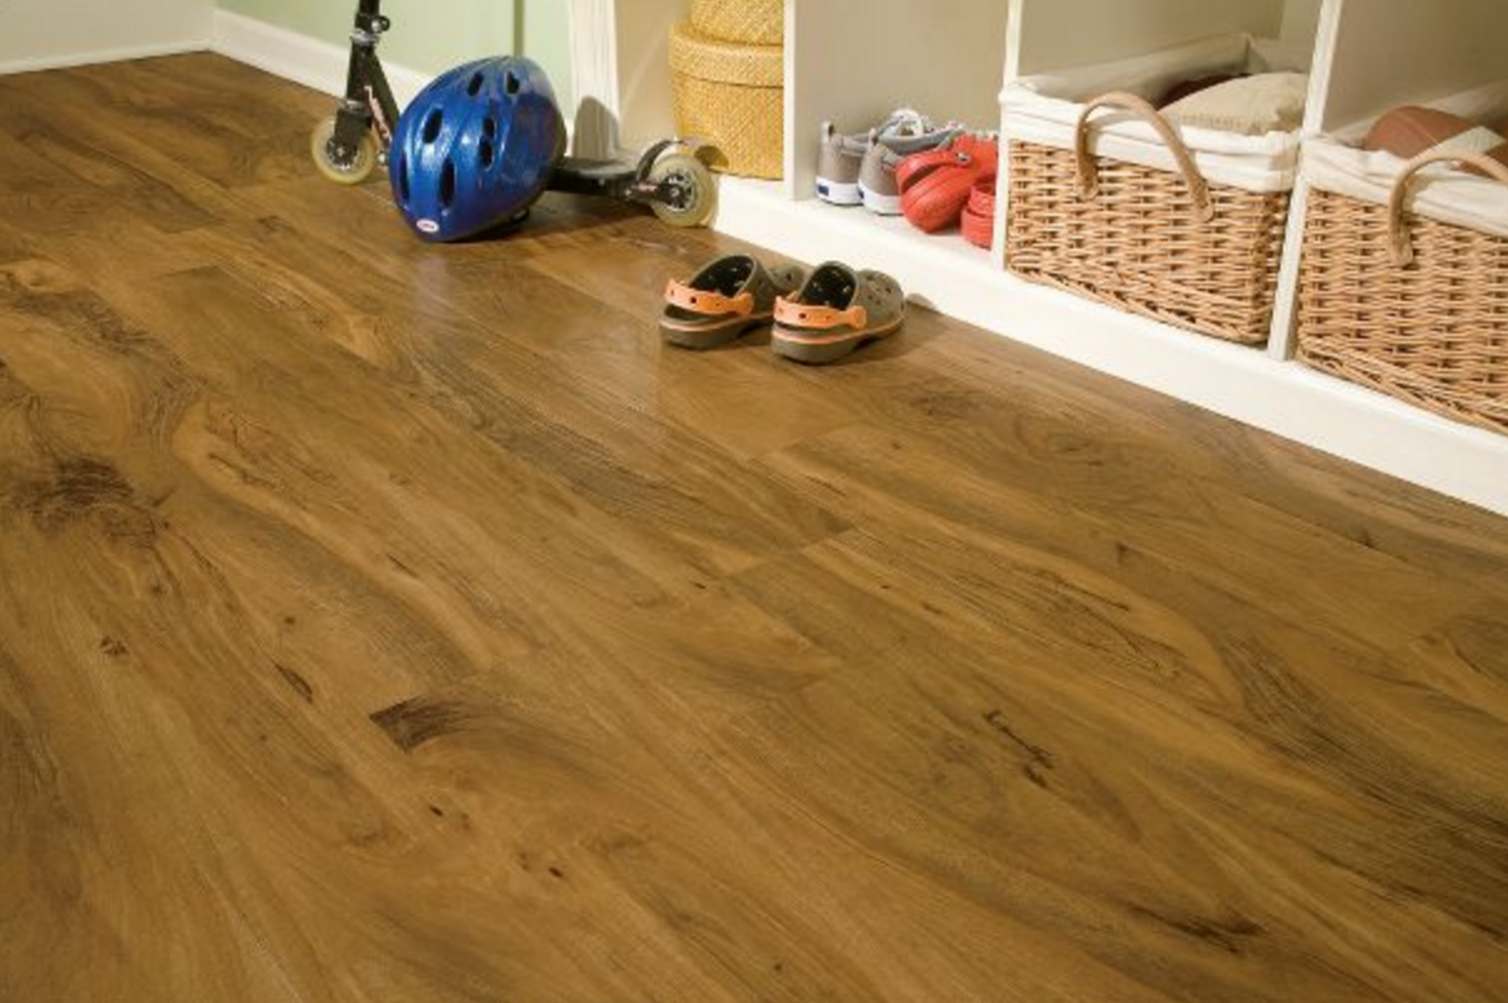 Finding A Floor That Looks Perfect In Your Home And Stands Up To Busy Lifestyle Is Easy With Luxe Plank Floors You Ll Find Beautiful Wood Stone